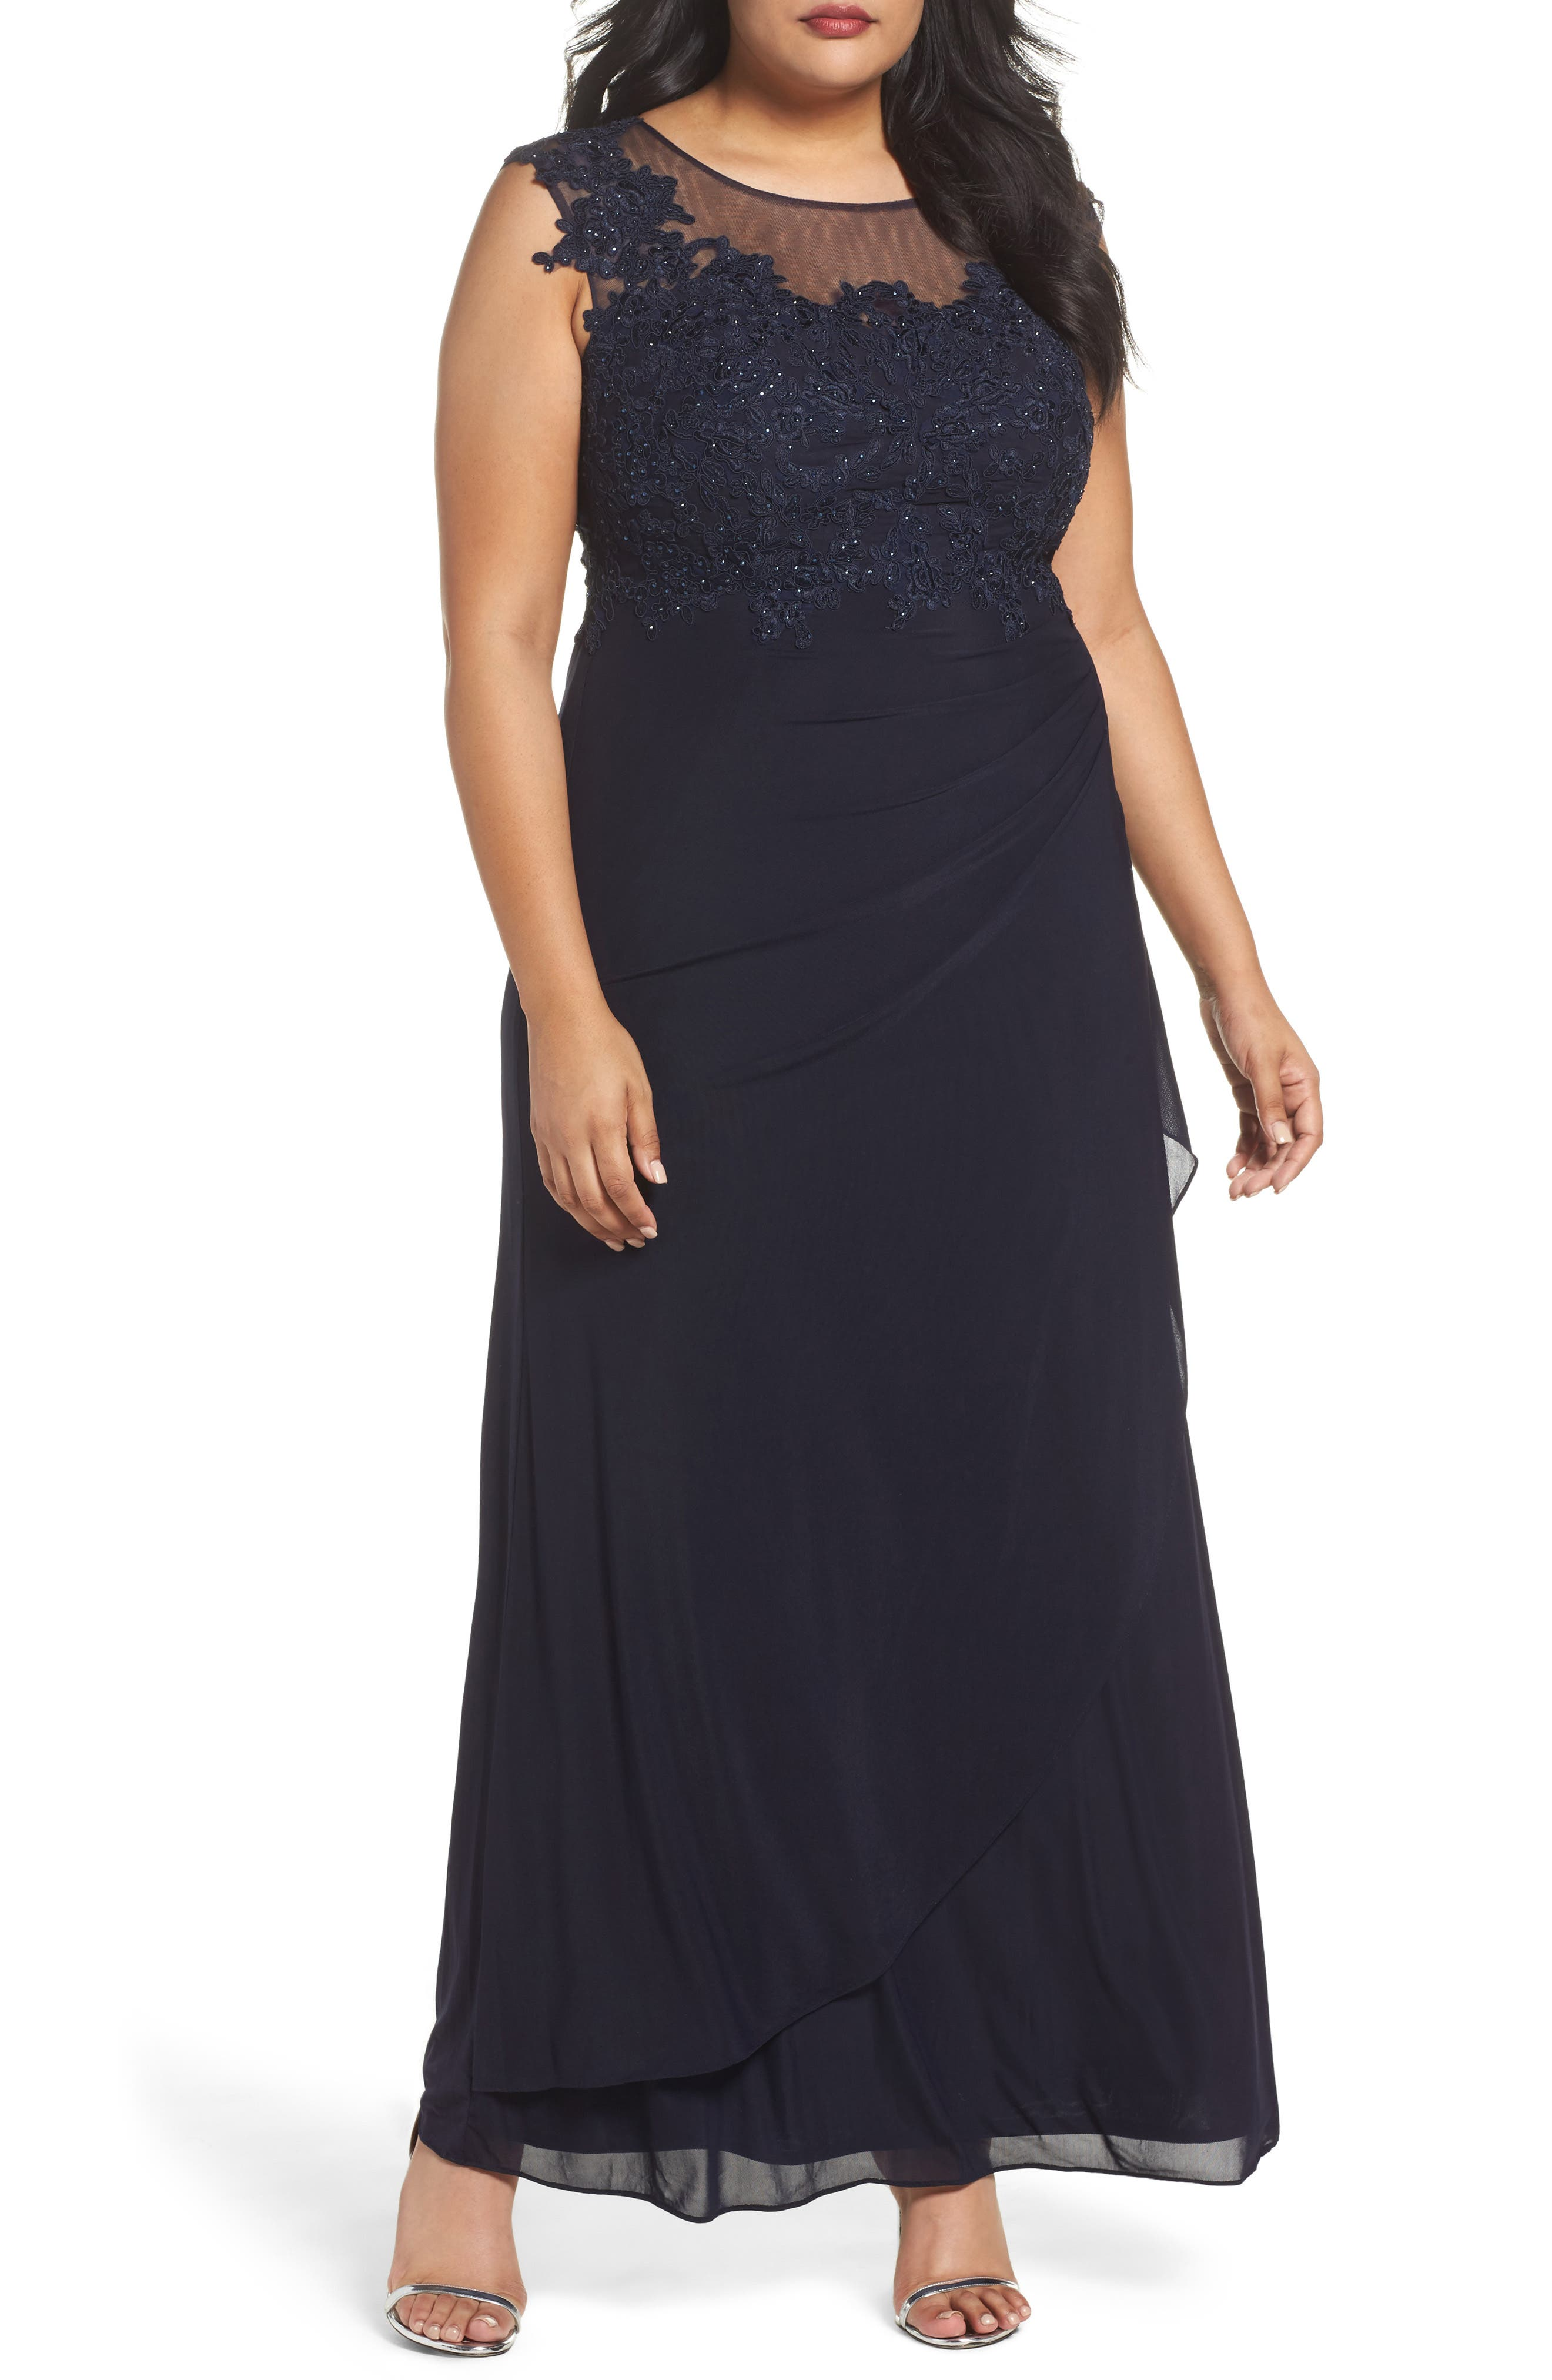 DECODE 1.8 Sequin Embroidered A-Line Gown (Plus Size)